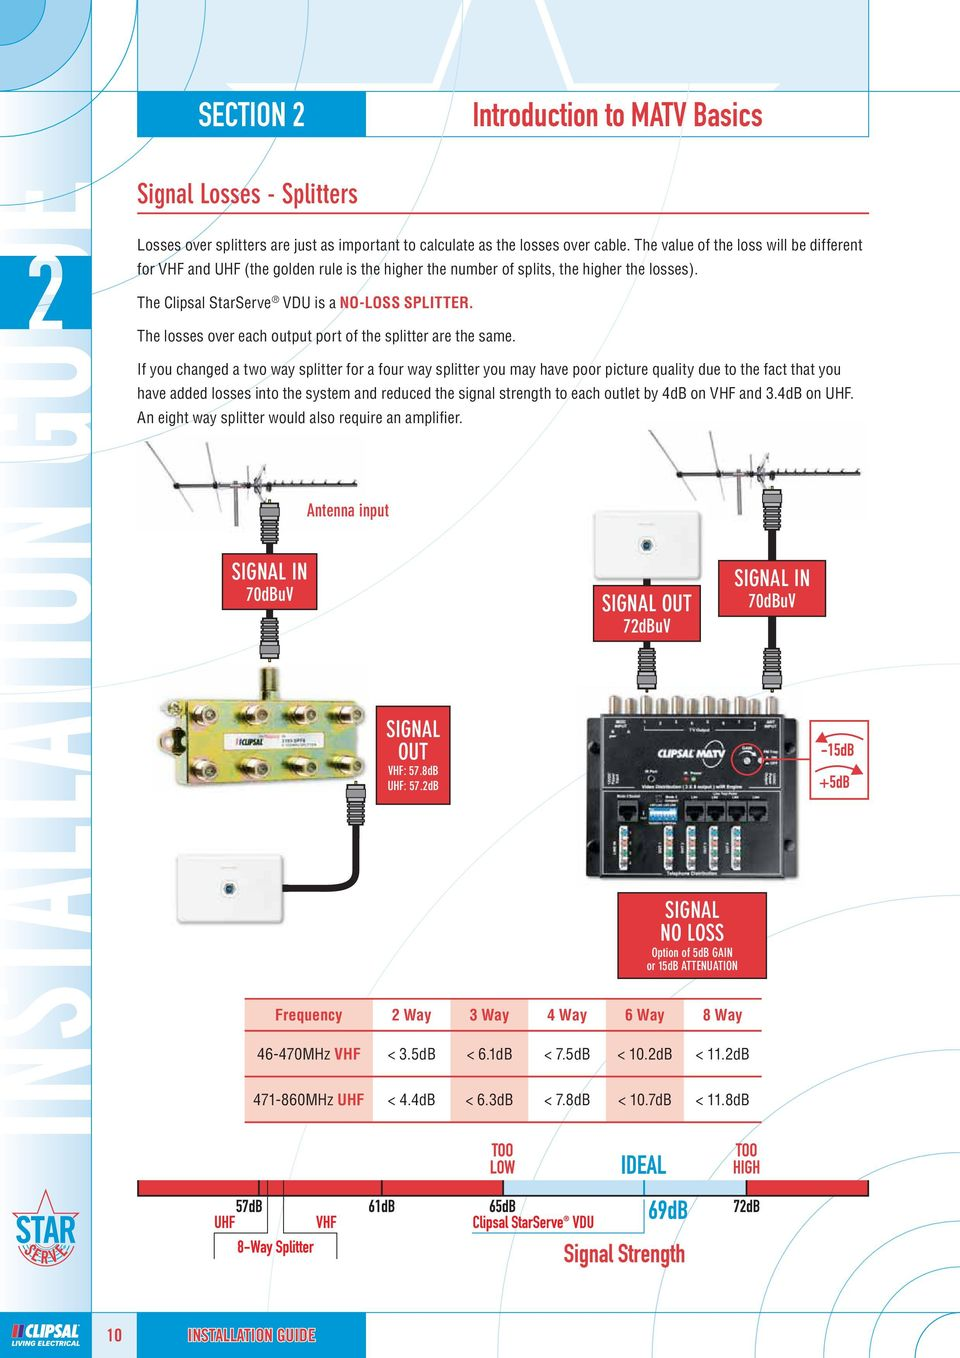 Home Networking Solutions Pdf If You Want The Infrared Transmitter That Has Signal Strength Is Losses Over Each Output Port Of Splitter Are Same